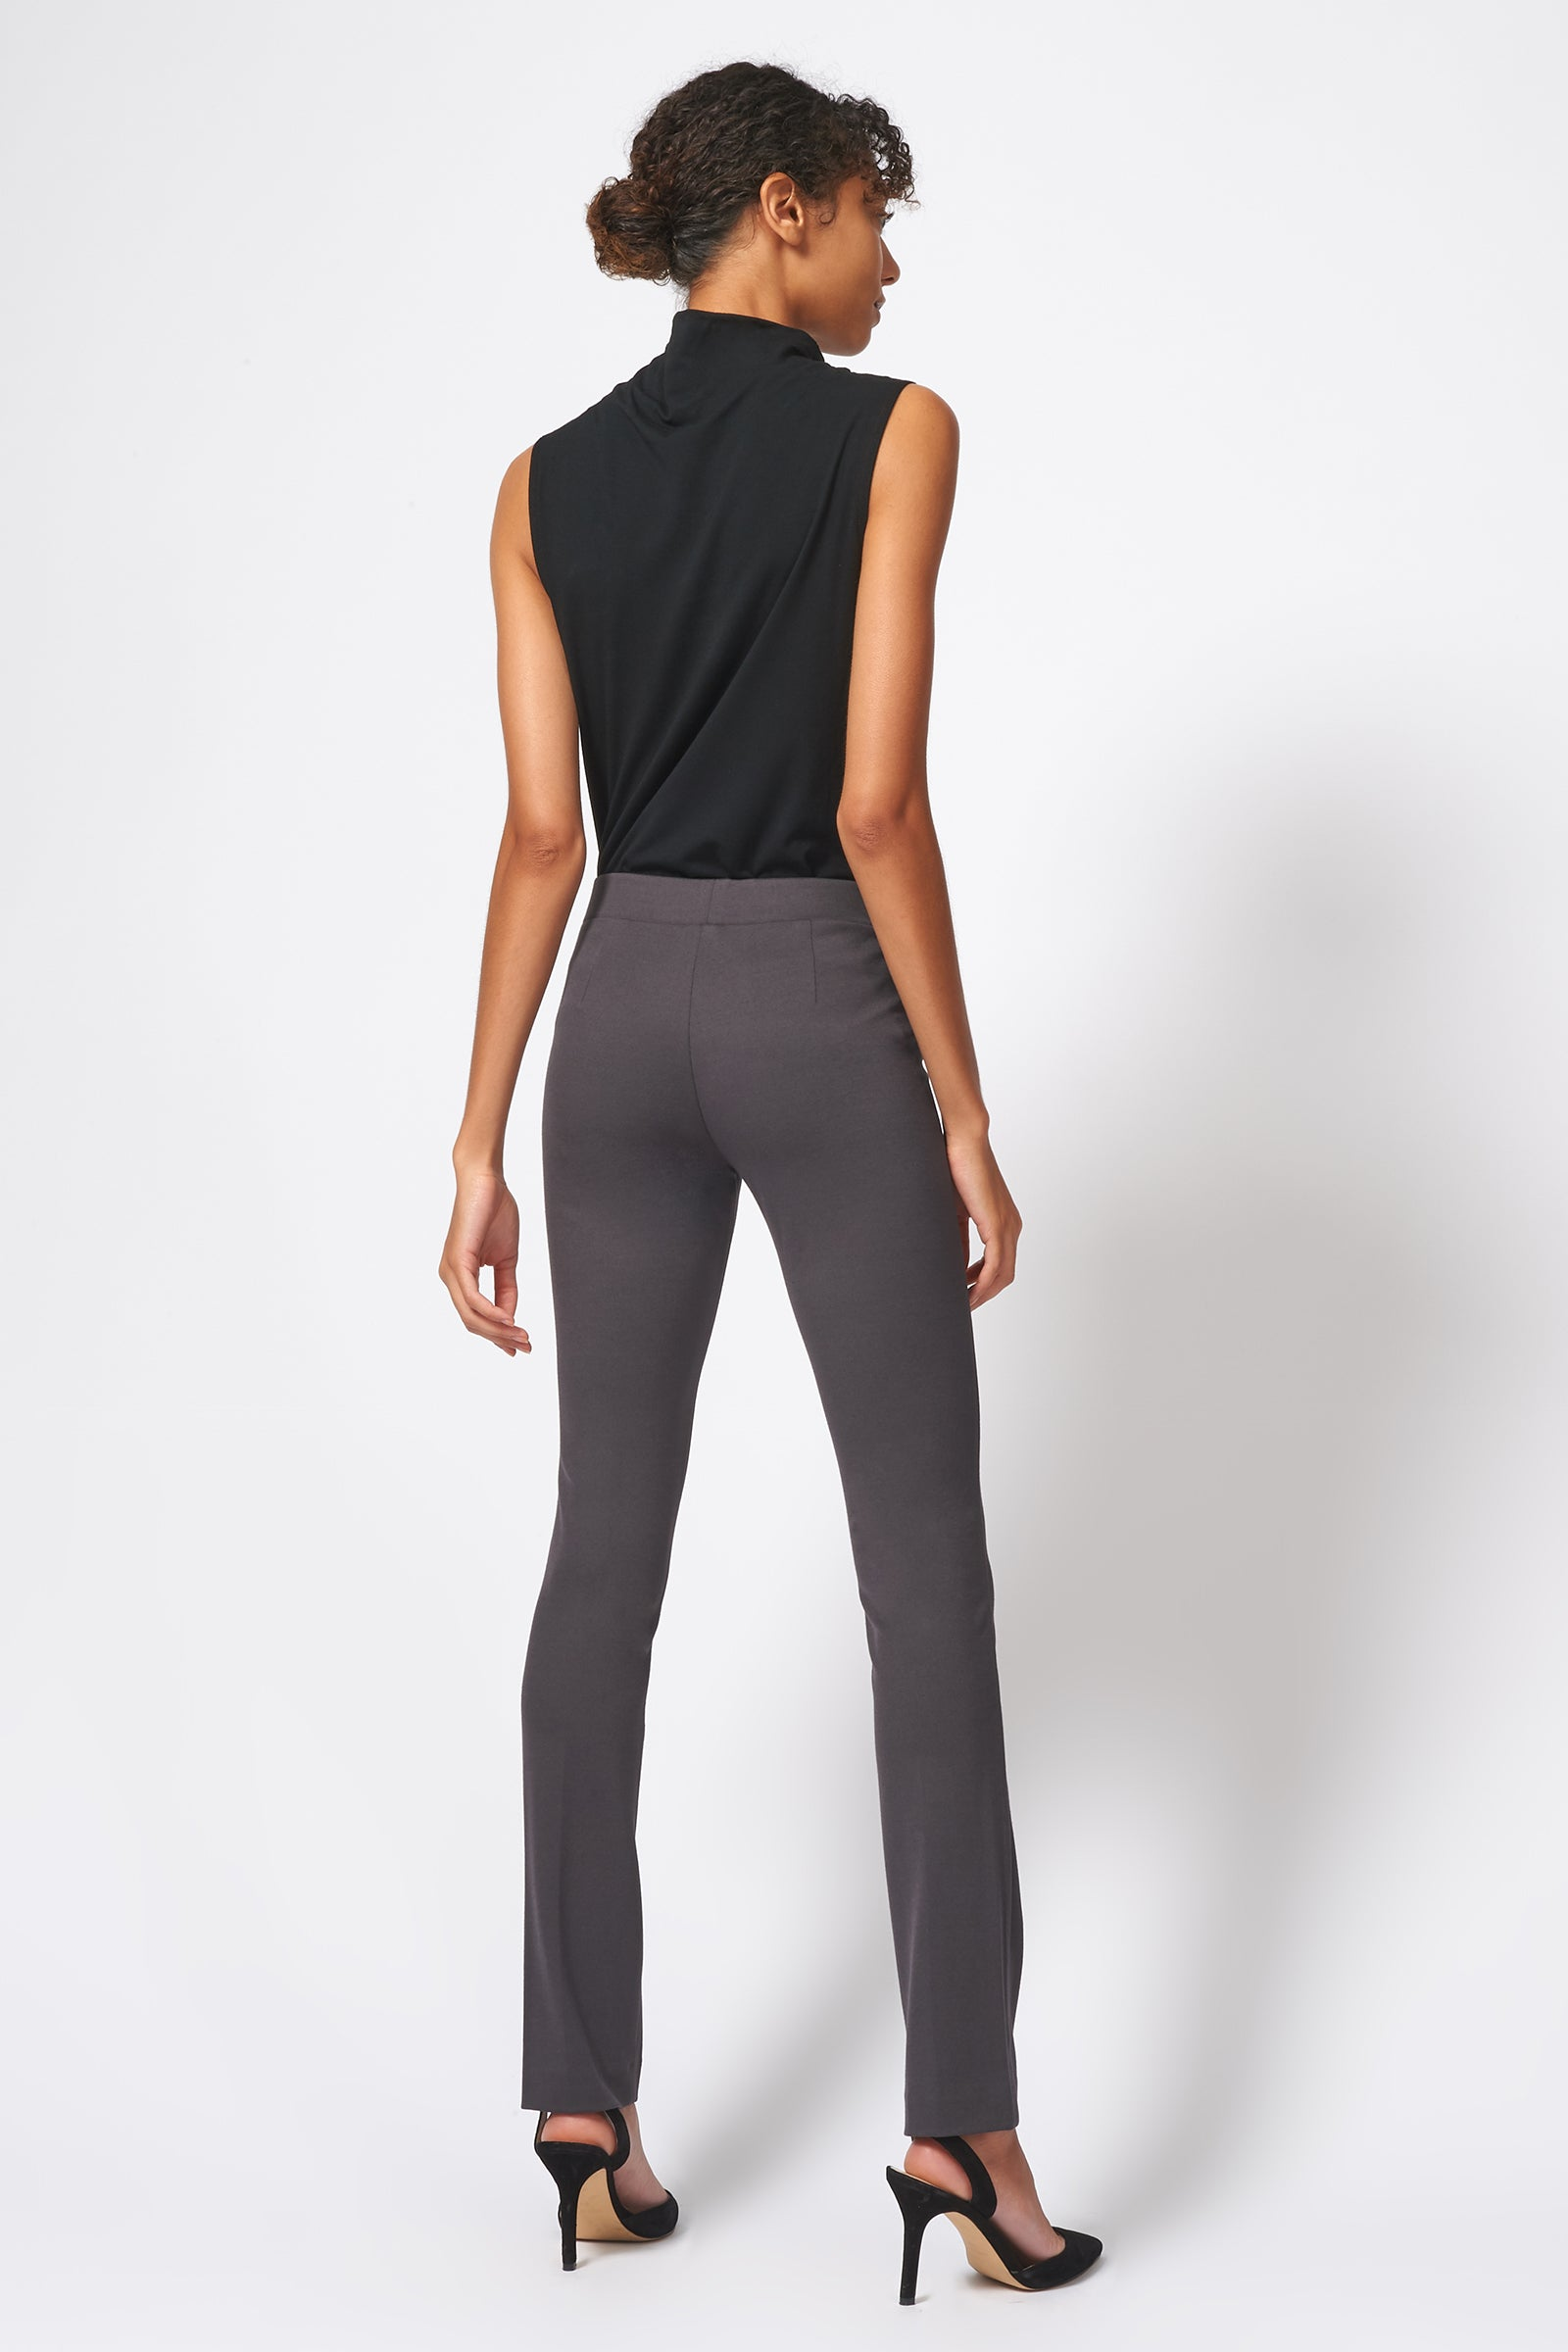 Kal Rieman Pintuck Ponte Straight Leg Pant in Charcoal on Model Front Side View